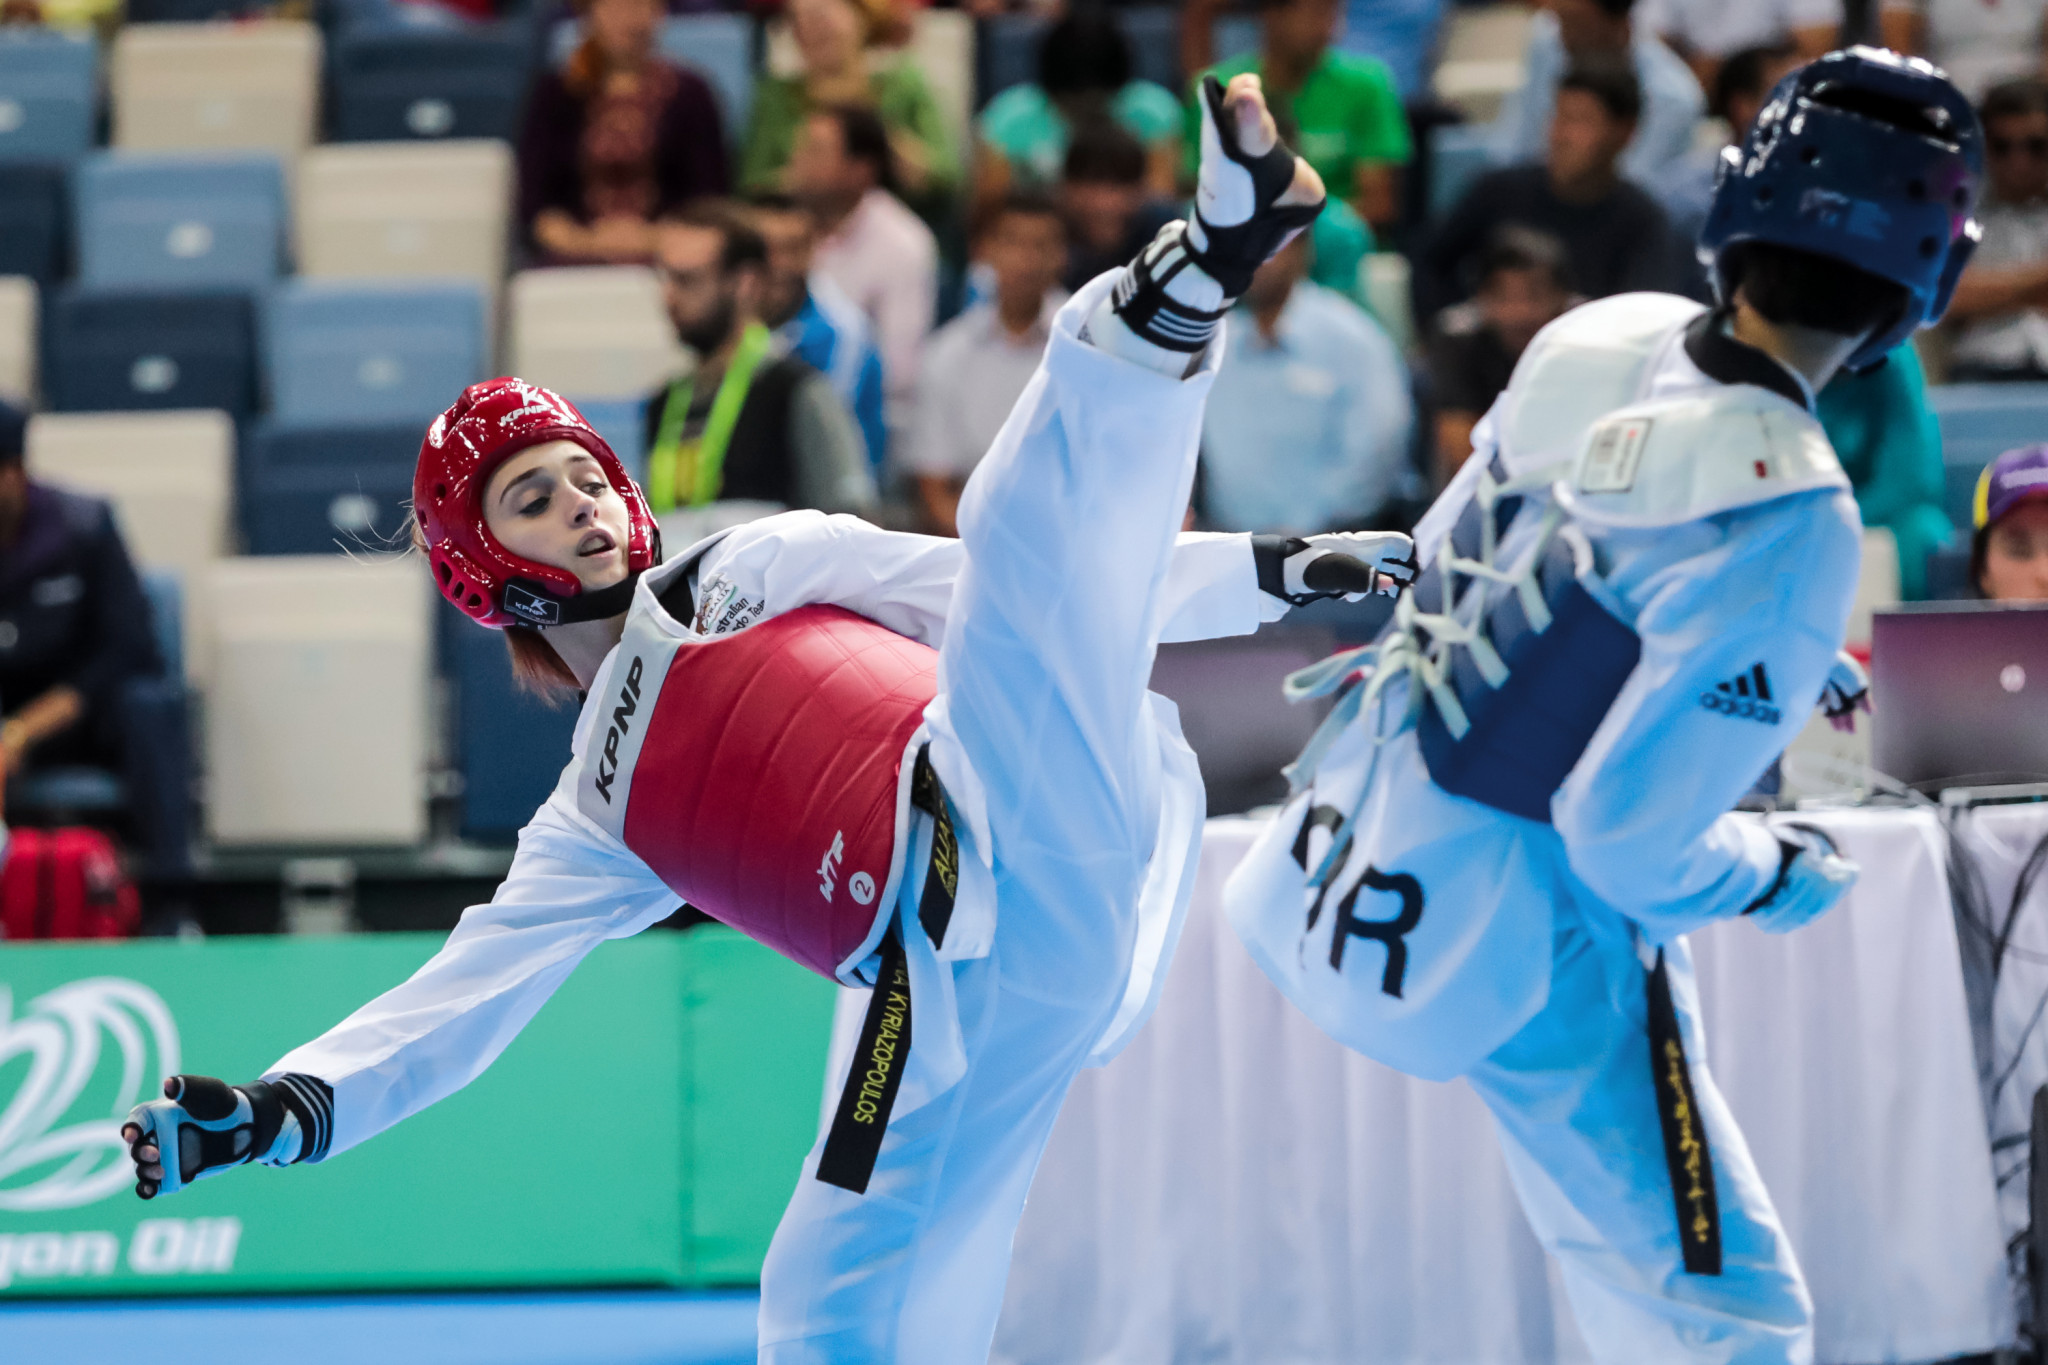 Deanna Kyriazopoulos was one of six taekwondo players to represnet Australia at the Asian Indoor and Martial Arts Games in Ashgabat last month ©Ashgabat 2017